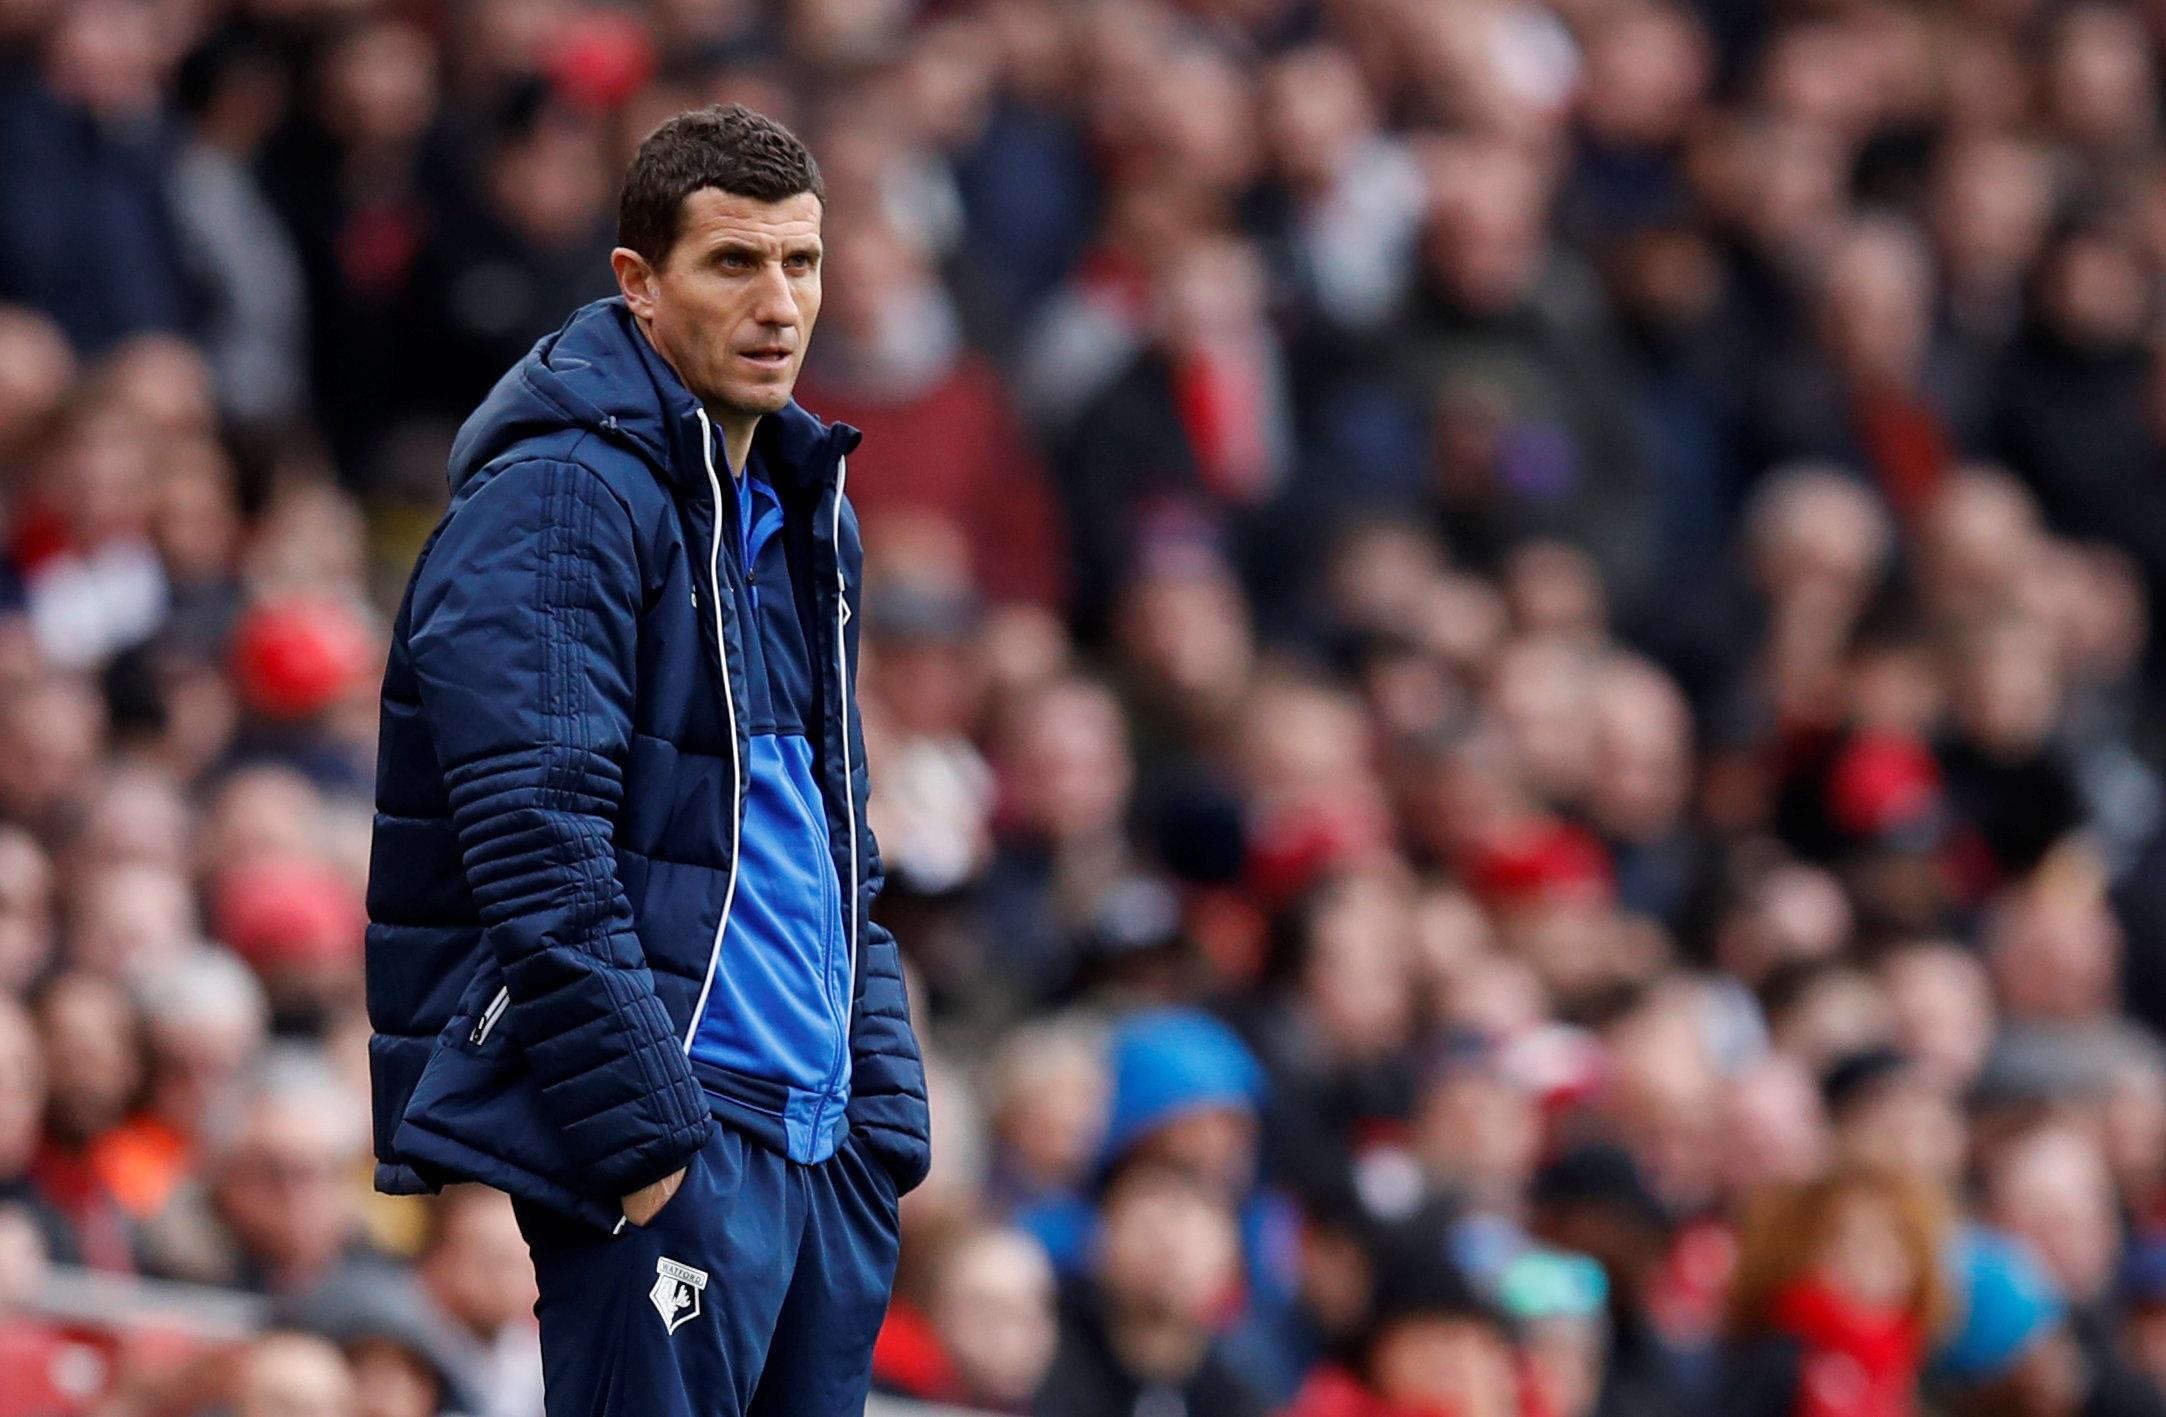 Unai Emery claims he was in Spain with Javi Gracia when Watford sacked him